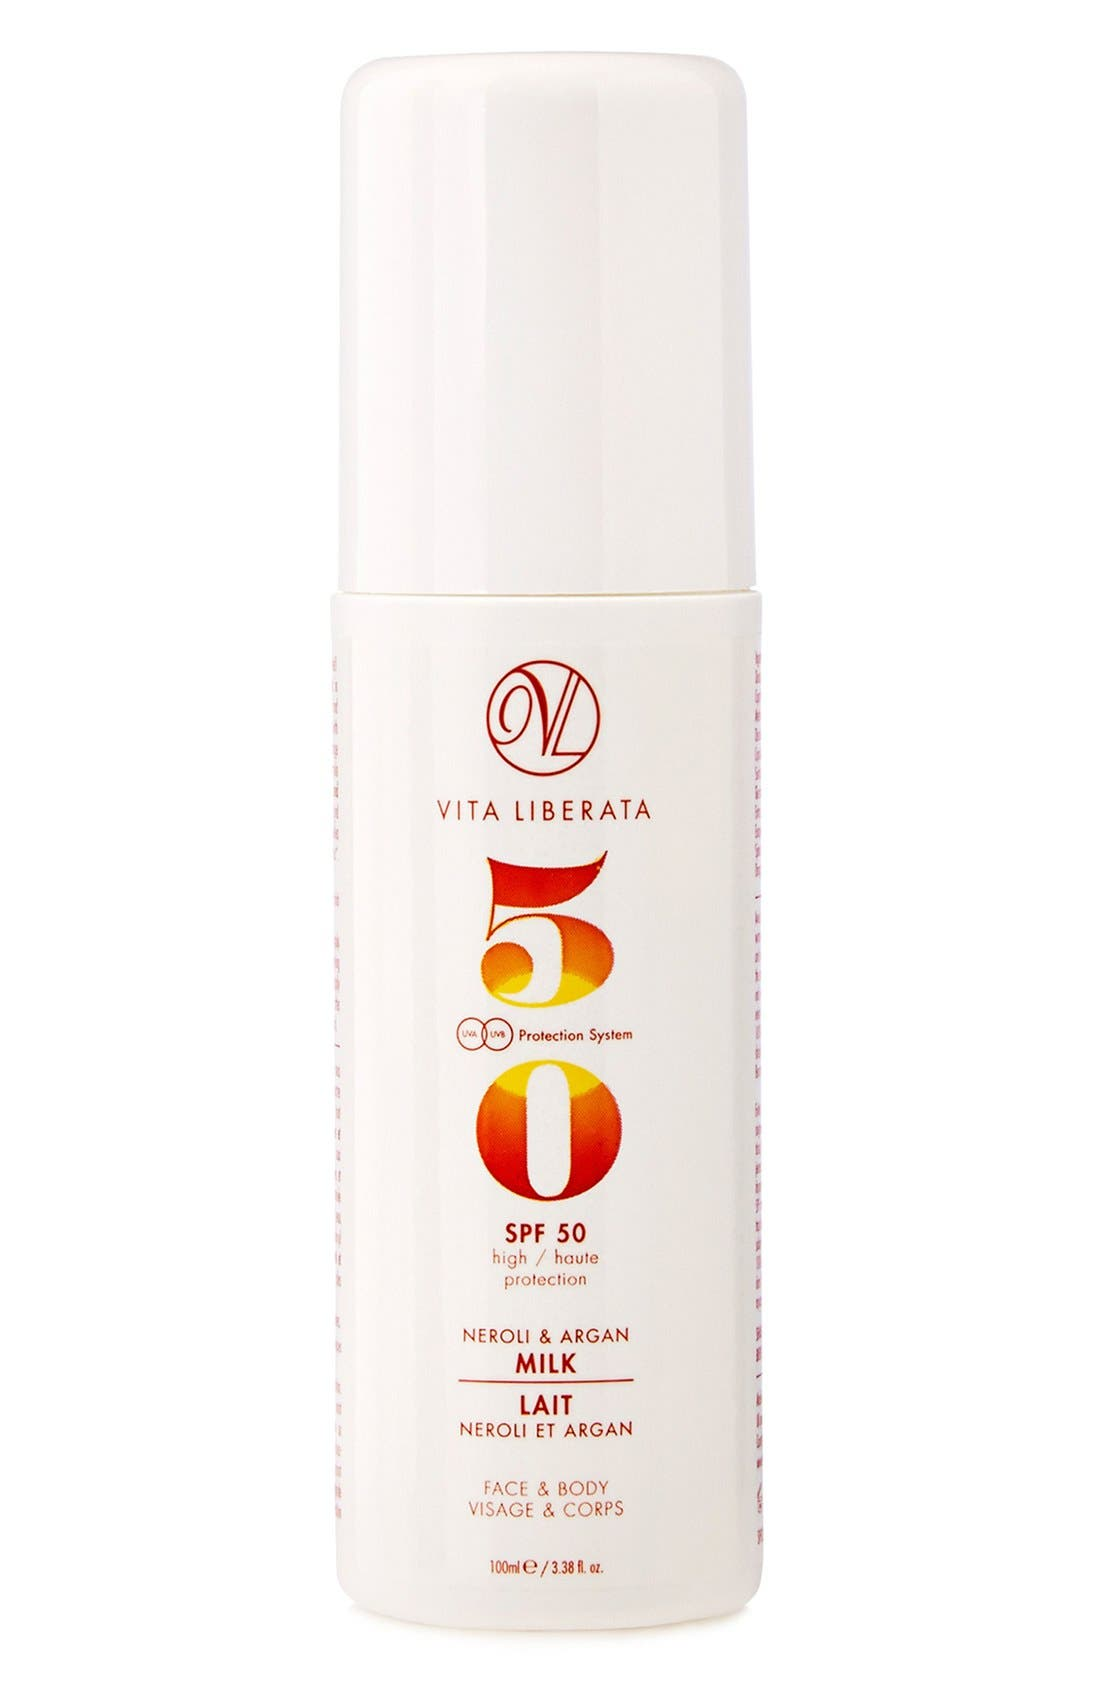 VITA LIBERATA Neroli & Argan Milk for Face & Body SPF 50